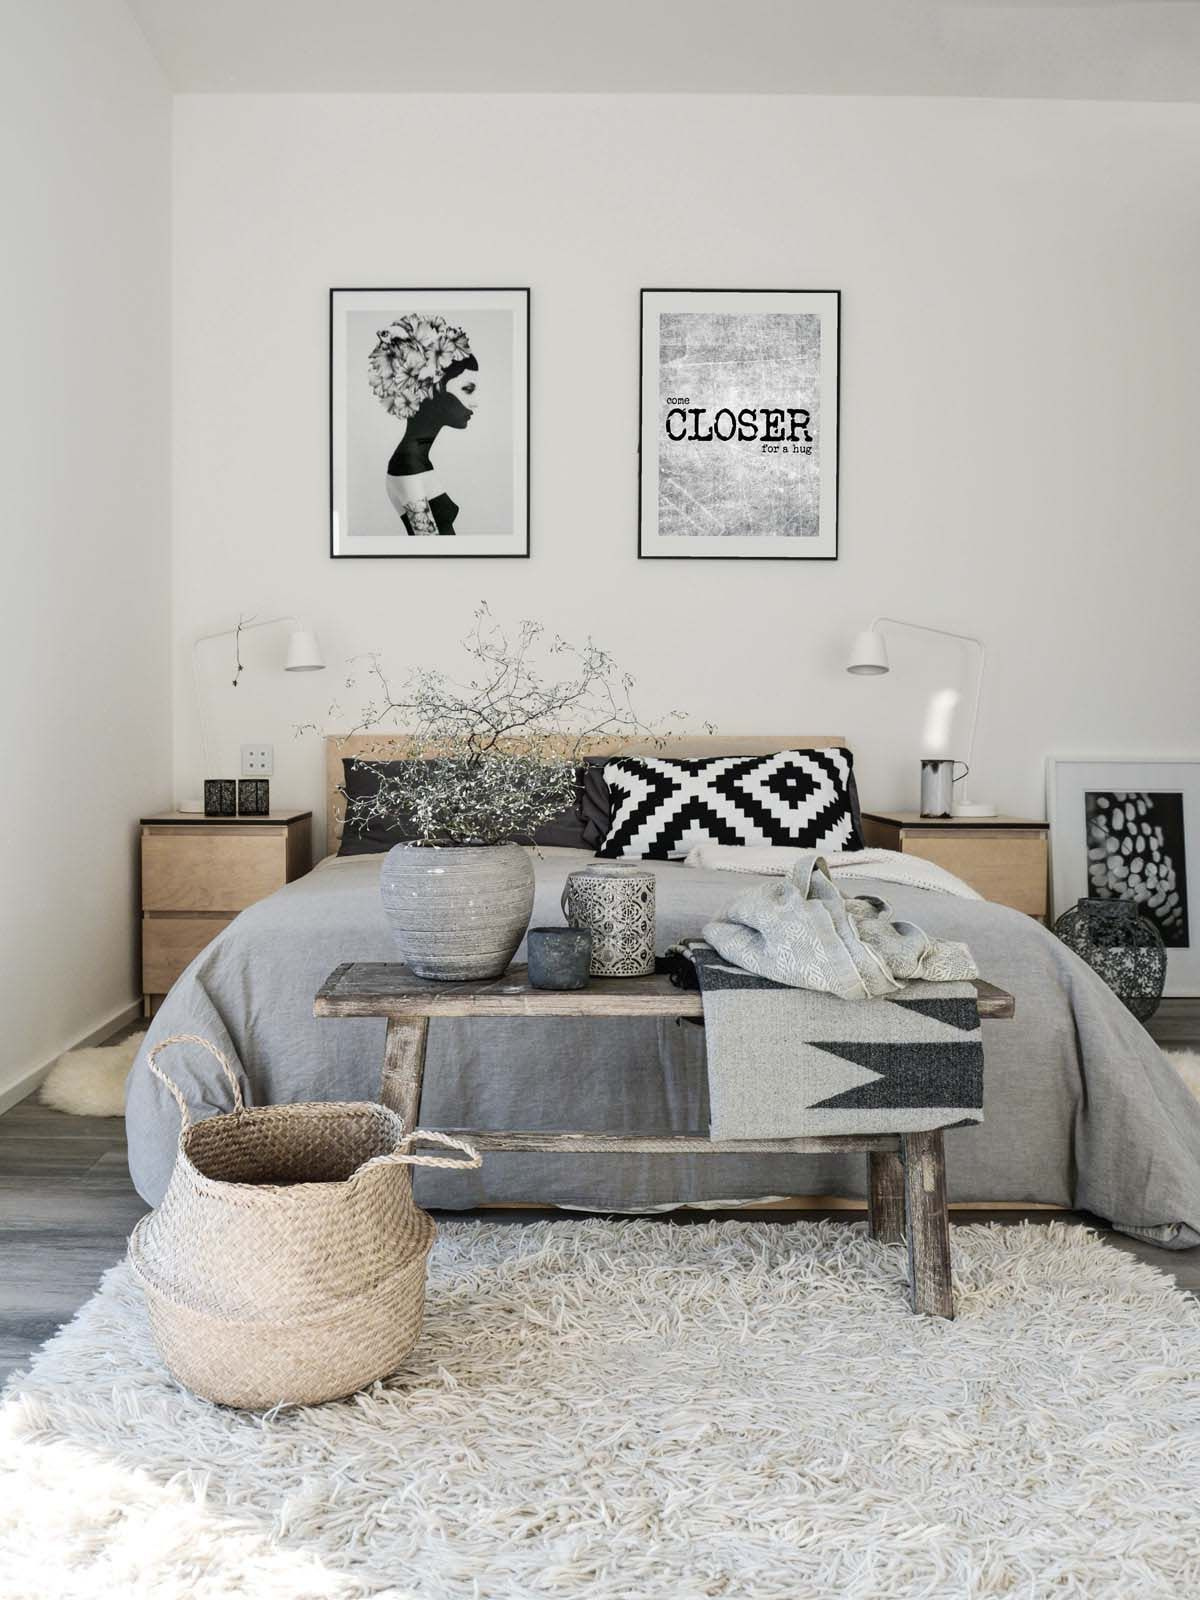 45 Scandinavian Bedroom Ideas That Are Modern And Stylish ベッド